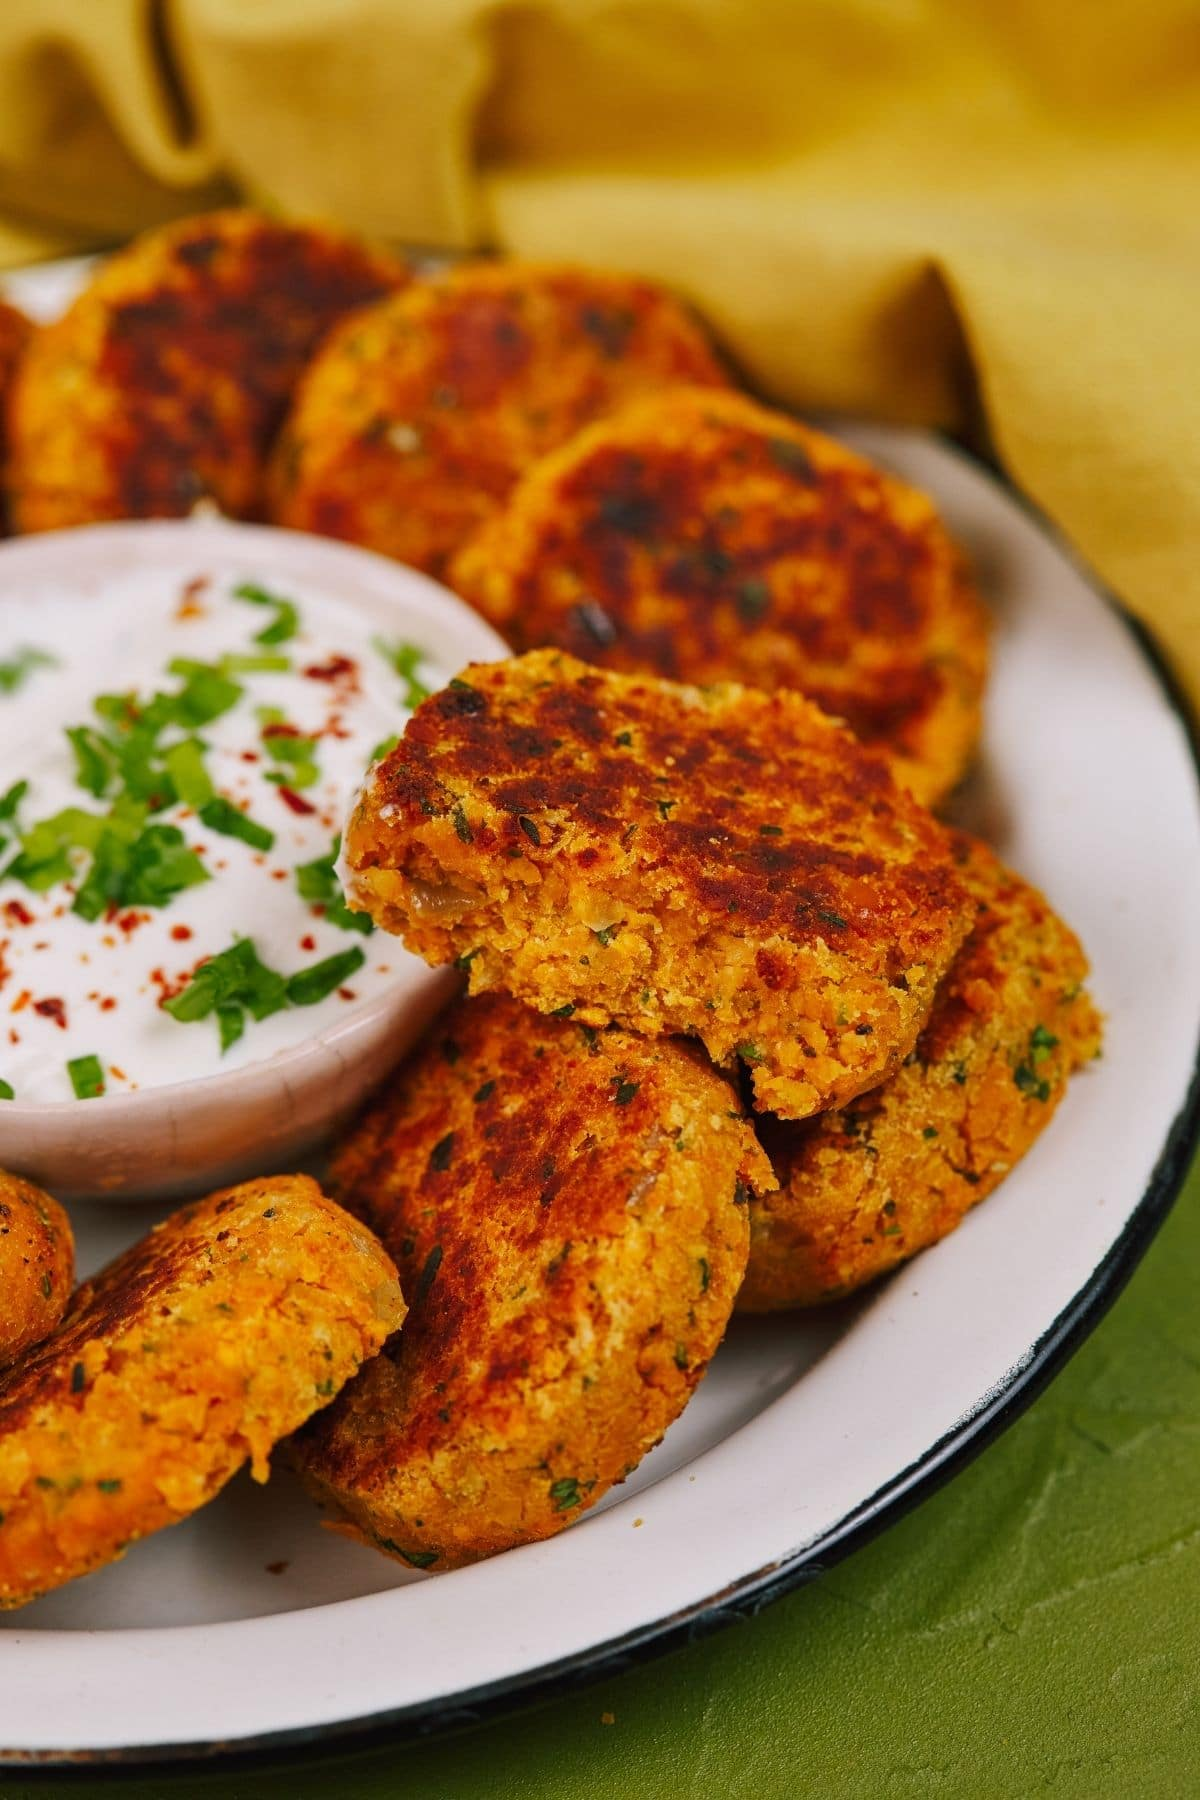 Fried veggie lentil patties on plate with bowl of dip topped with parsley